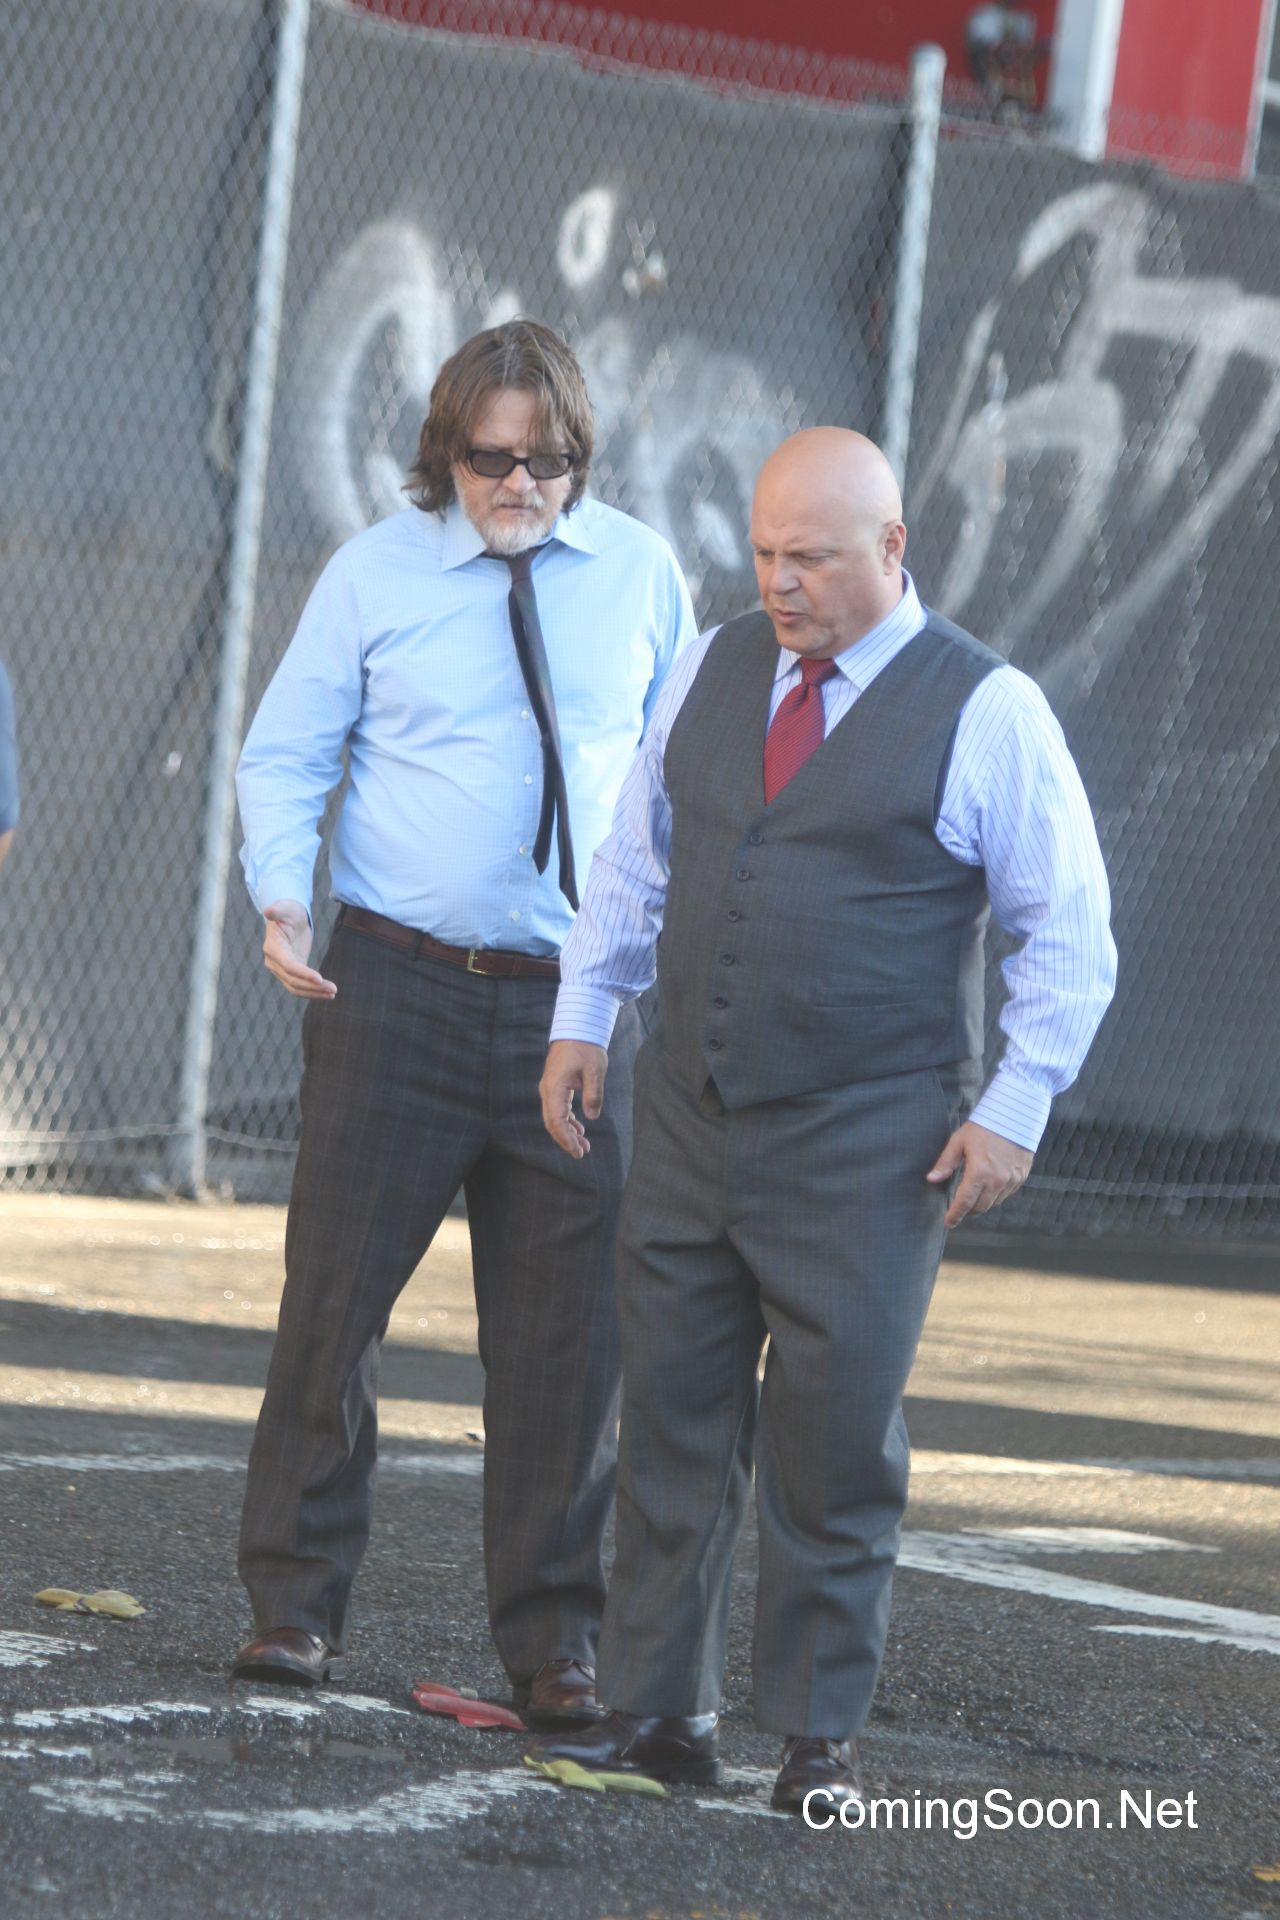 Actors are on set for the filming of 'Gotham' tv showFeaturing: Michael Chiklis, Donal LogueWhere: New York City, New York, United StatesWhen: 23 Aug 2016Credit: Macguyver/WENN.com